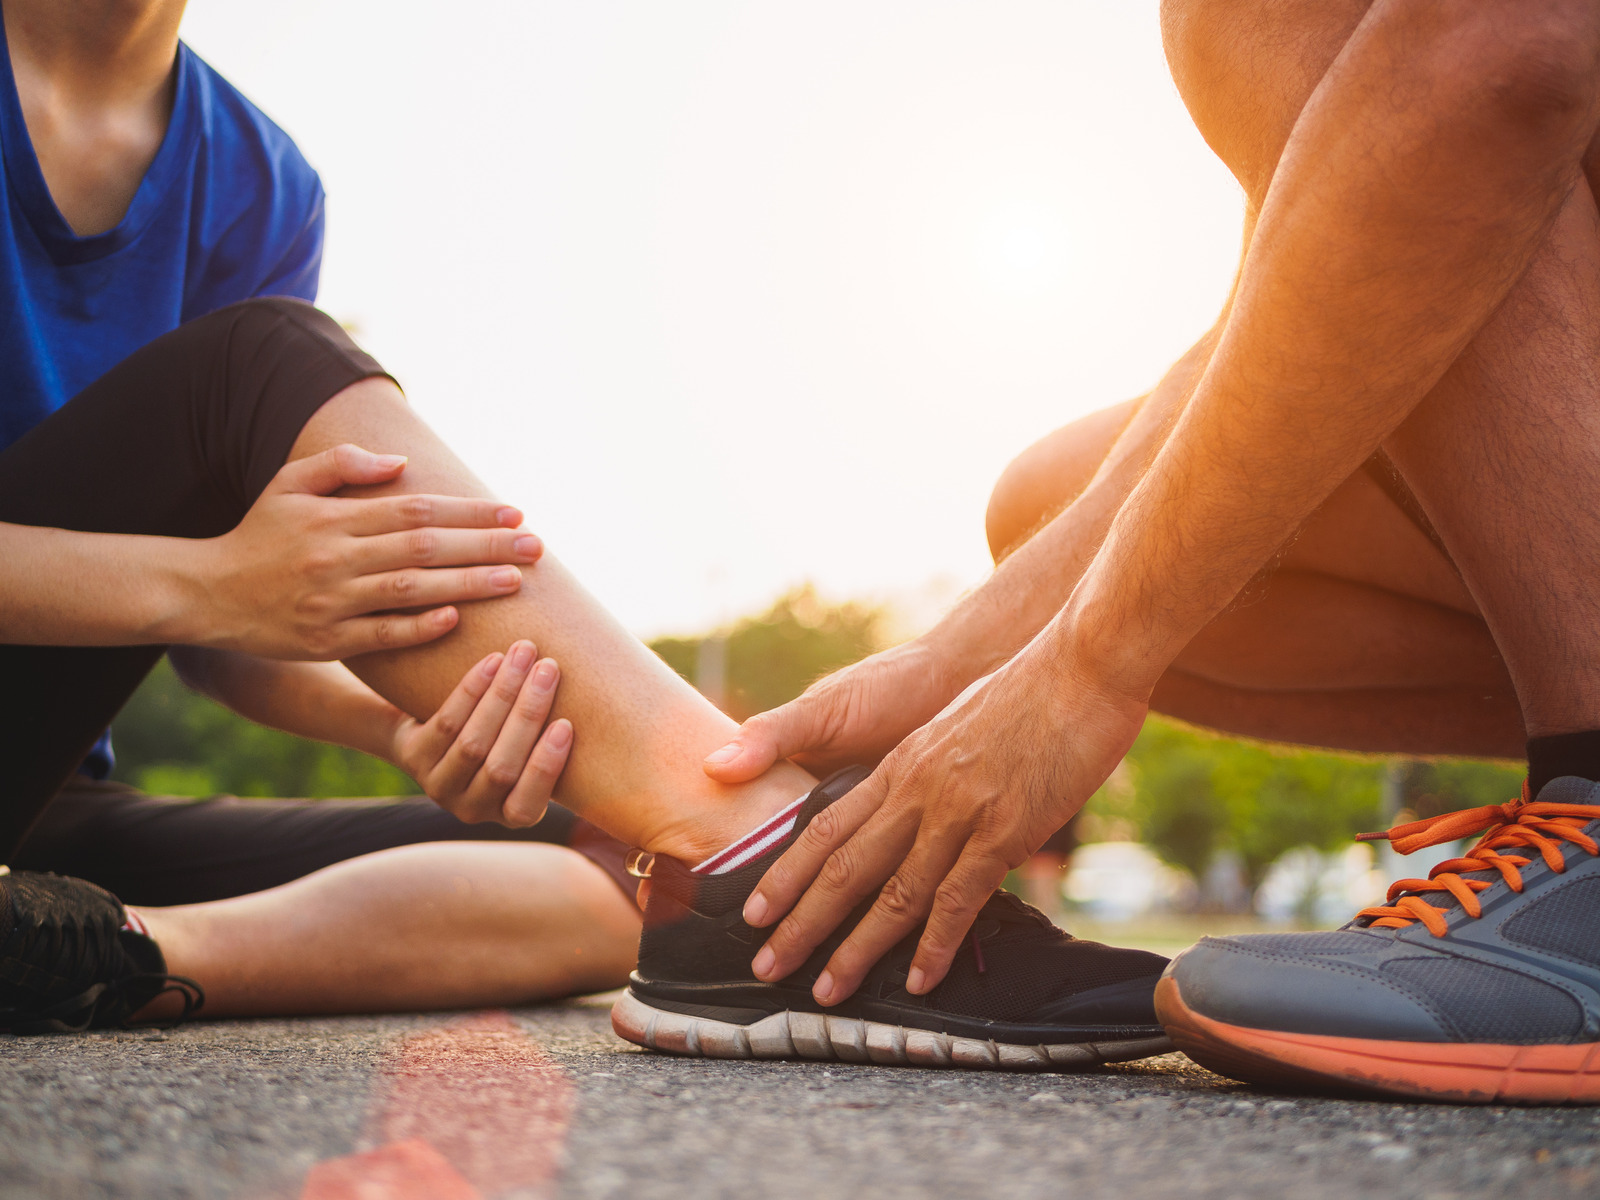 Ankle Sprain Injury. Young woman suffering from an ankle injury while exercising and running and she getting help from man touching her ankle.